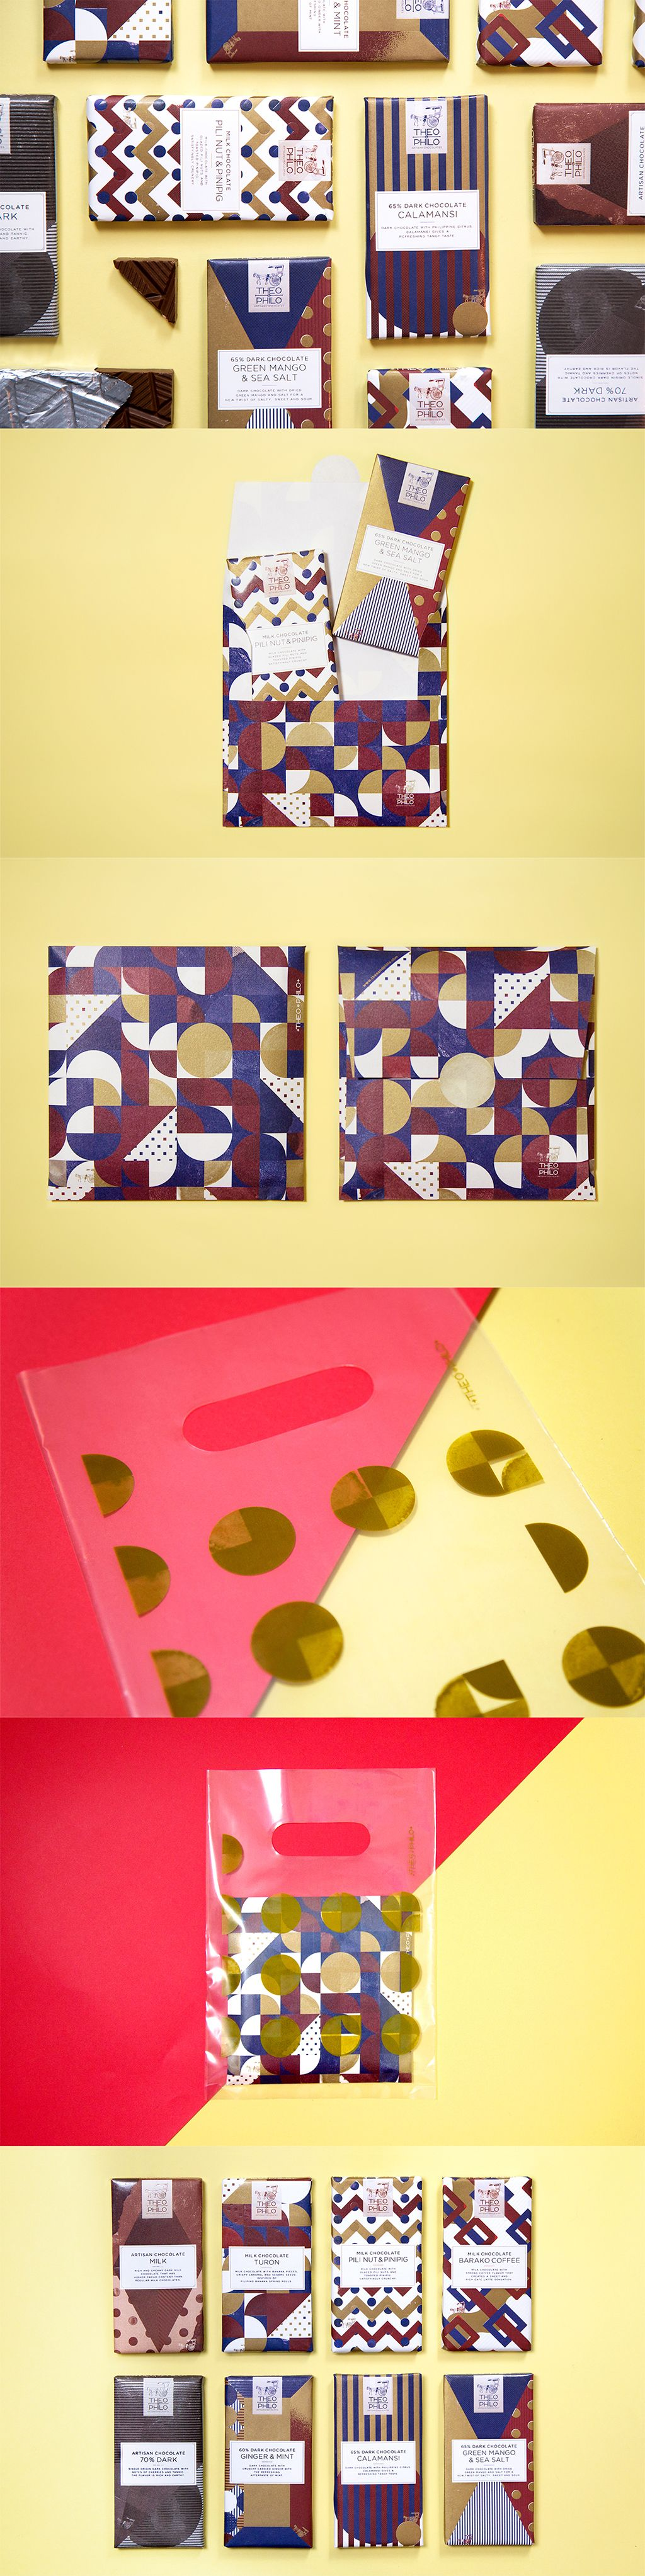 Theo & Philo Chocolate Package Design / 石黒 篤史 / Atsushi Ishiguro(OUWN)